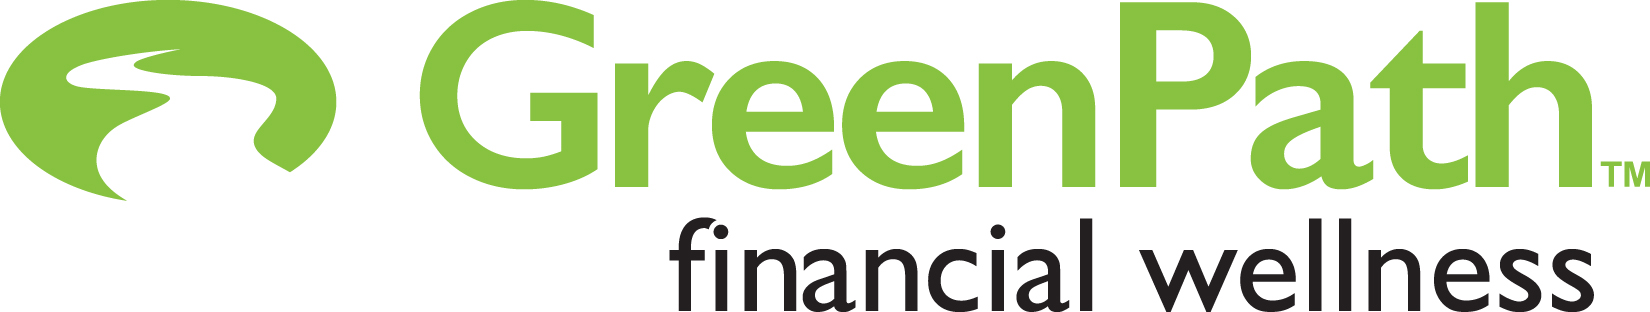 Greenpath Financial Wellness Logo